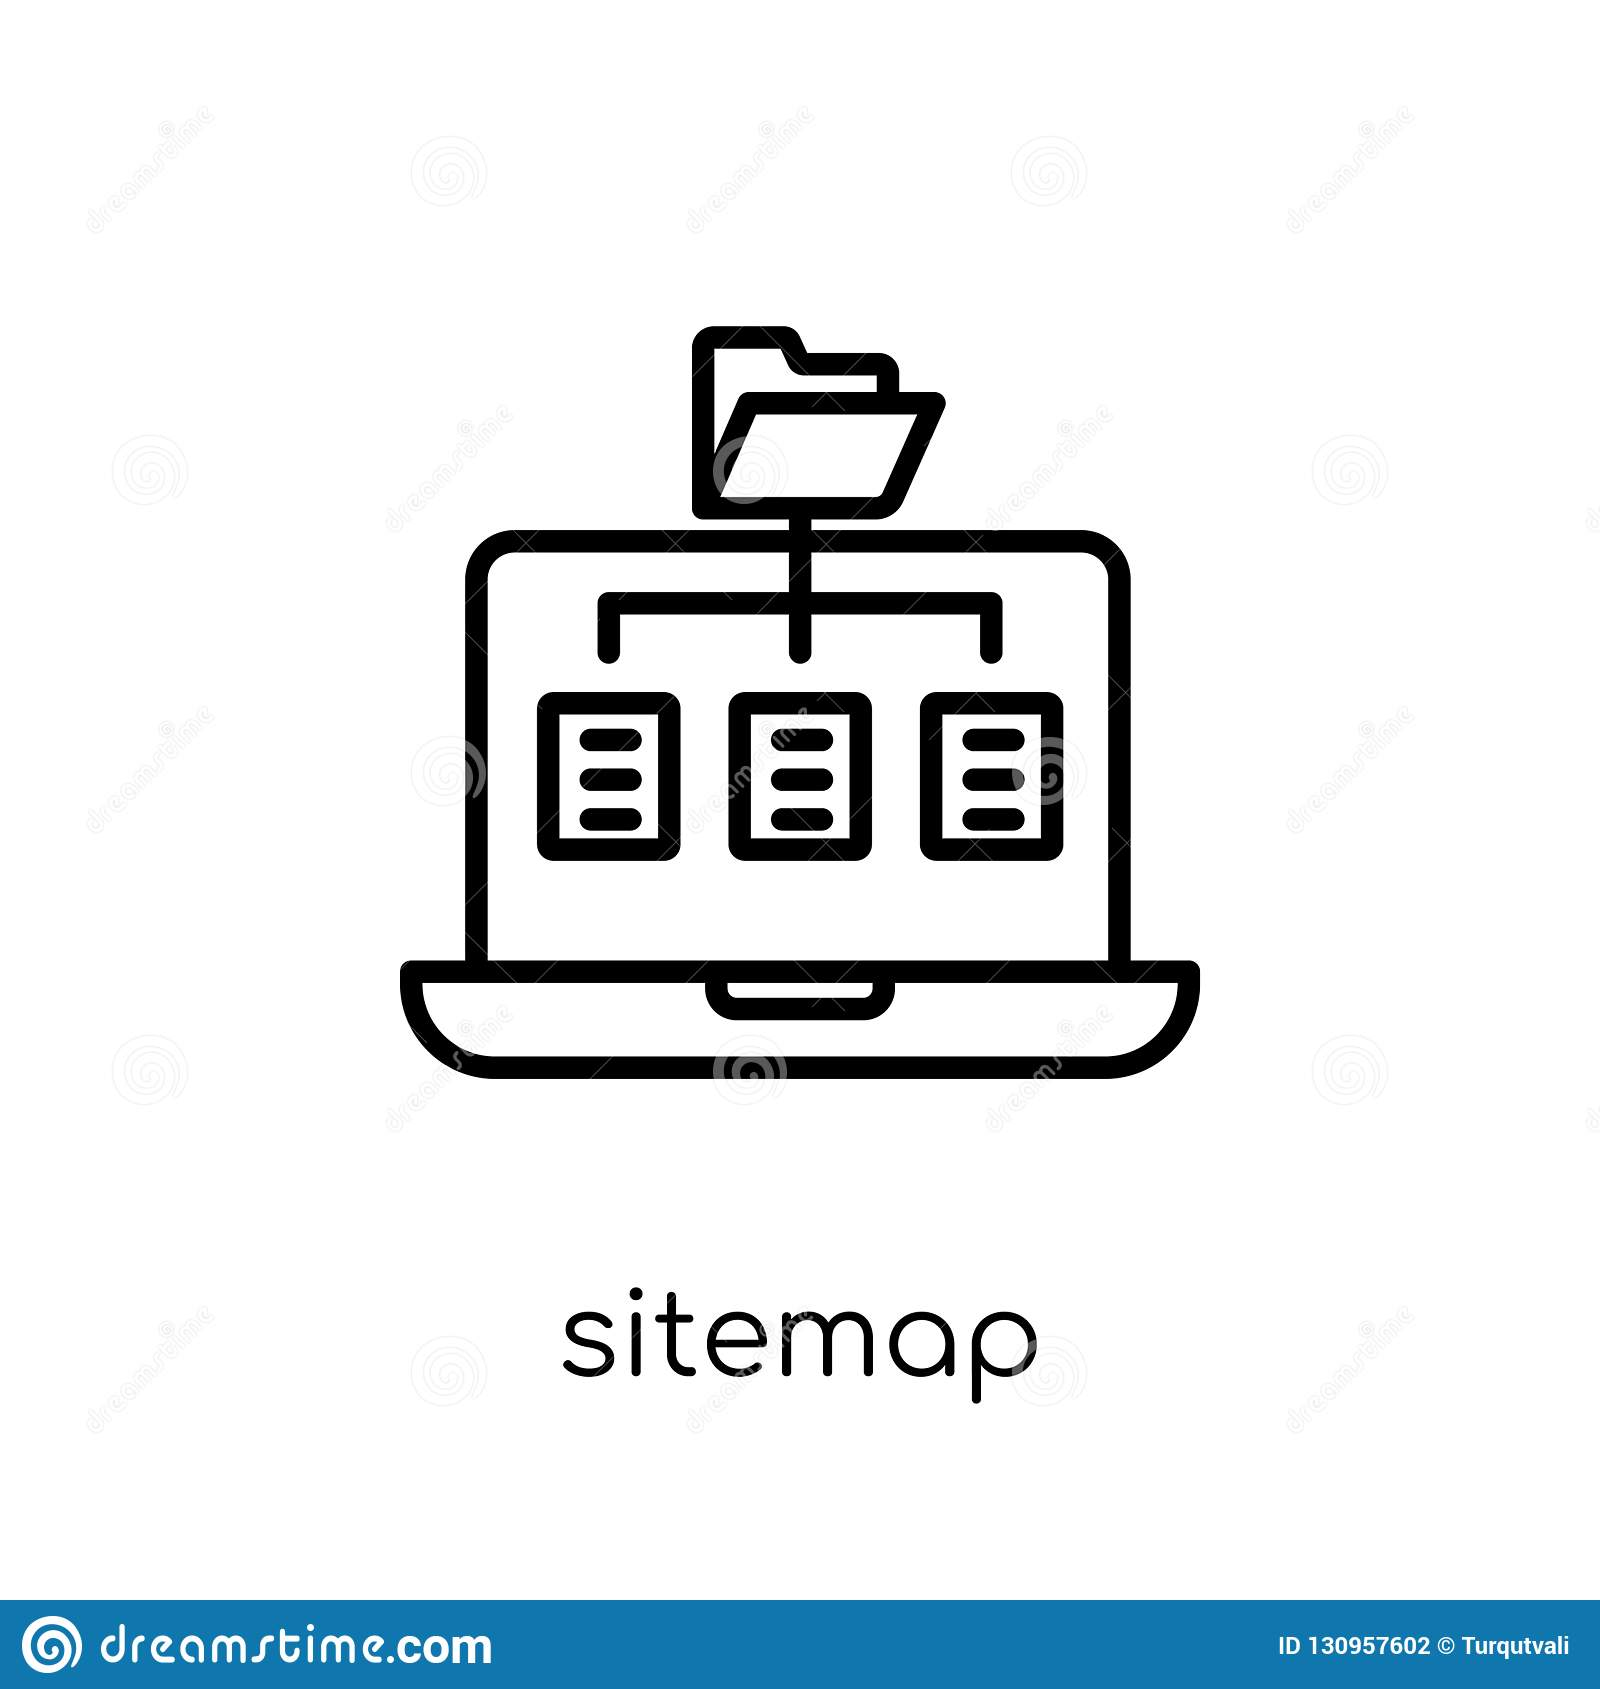 Sitemap icon. Trendy modern flat linear vector Sitemap icon on w